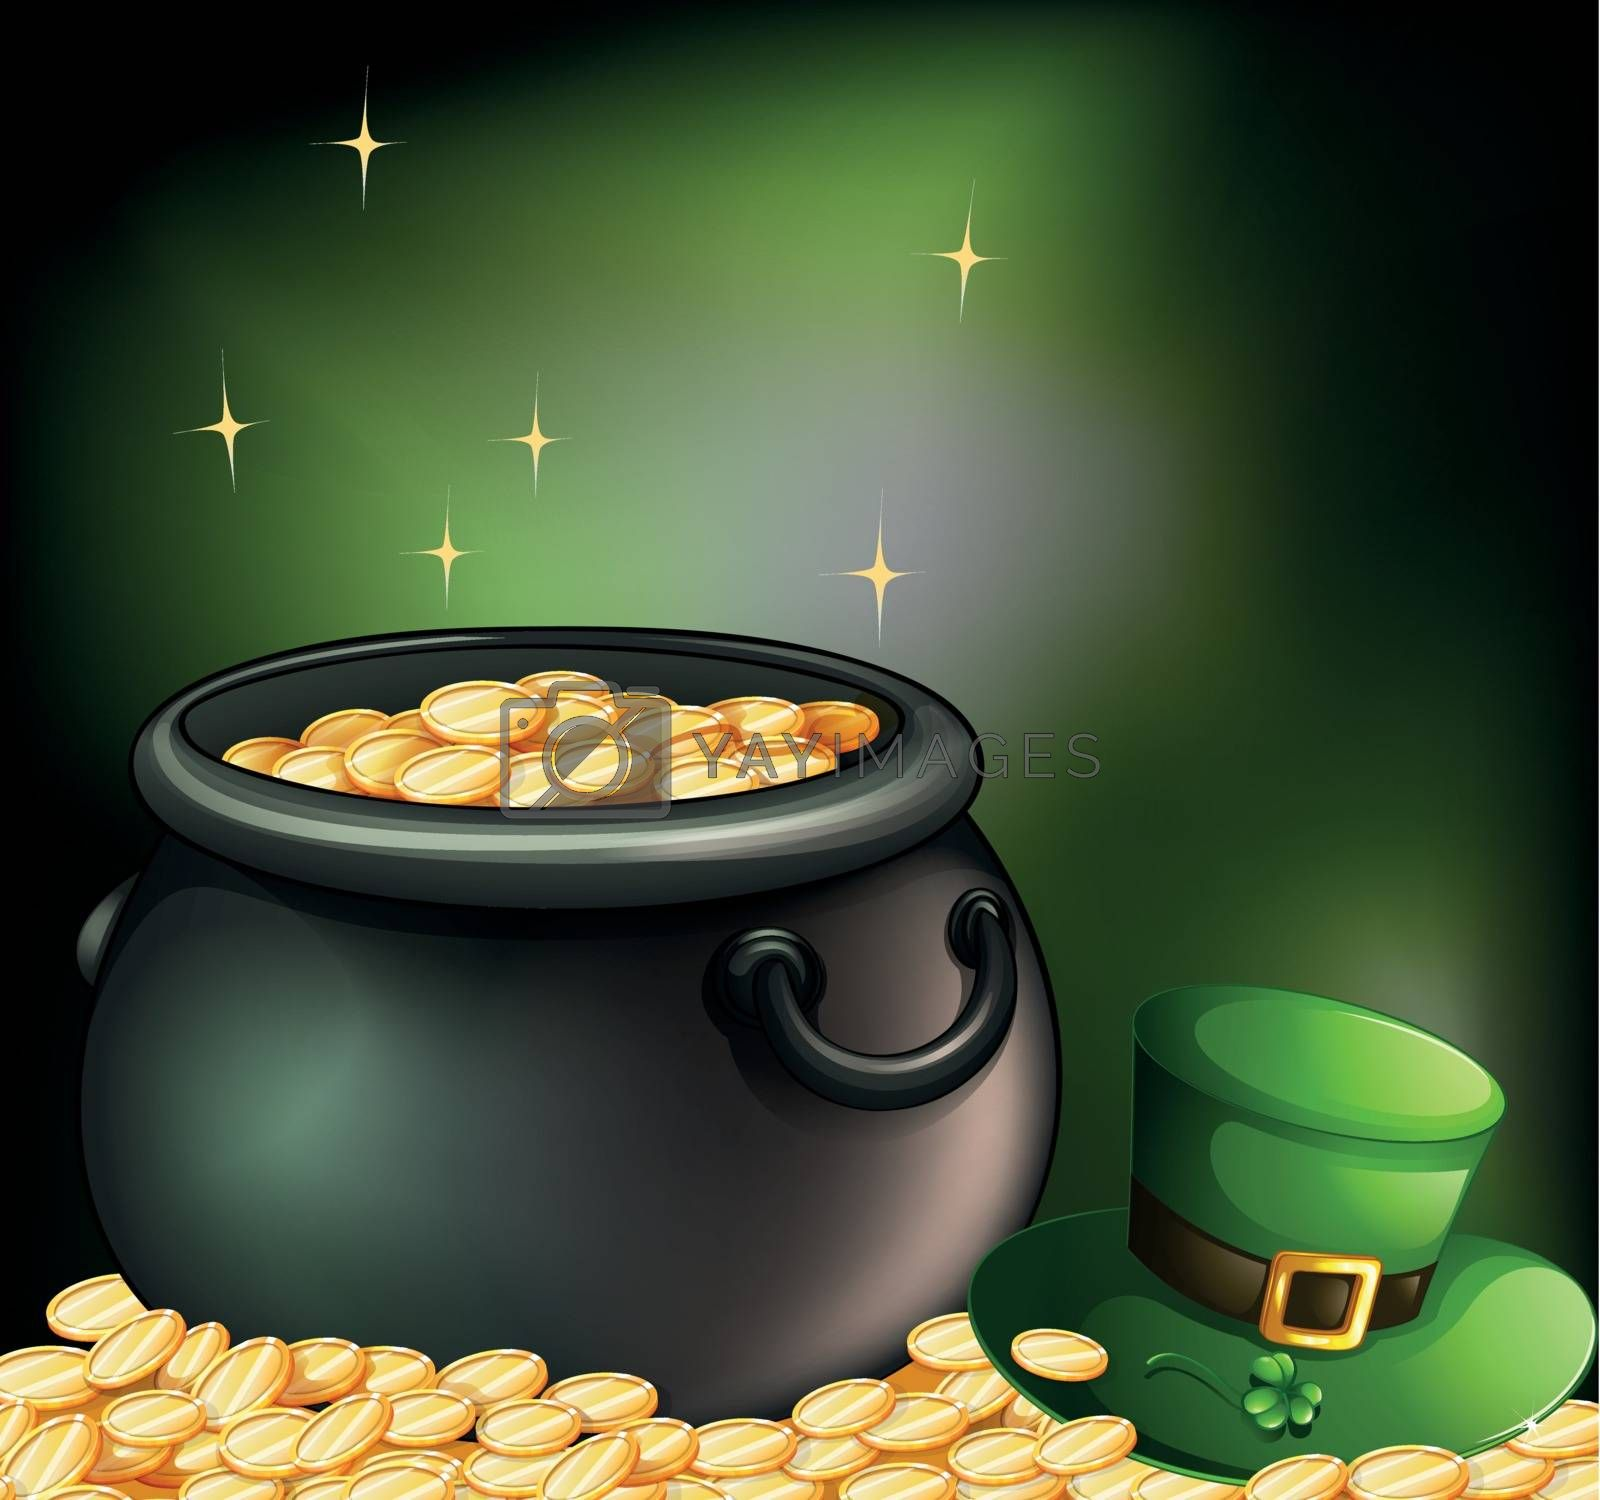 Illustration of the gold coins inside a pot and a green hat